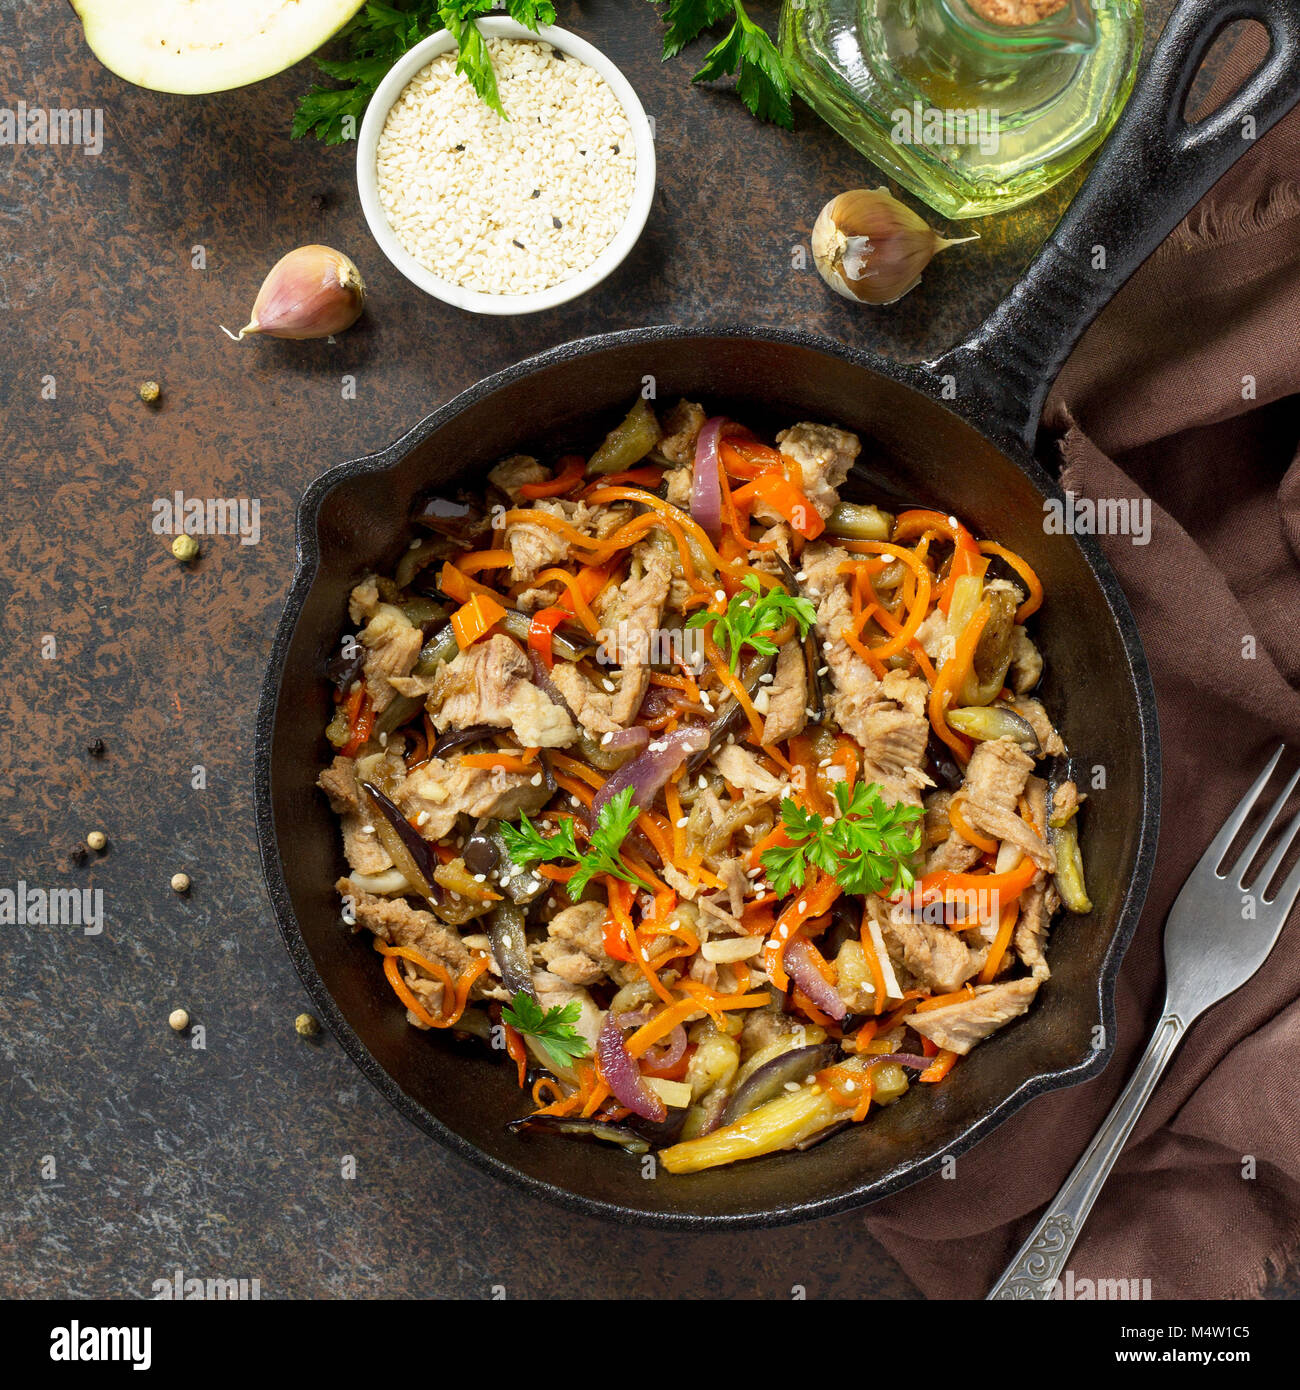 Warm salad with boiled meats and grilled vegetables (eggplant, carrots, paprika) on dark stone or slate background. - Stock Image